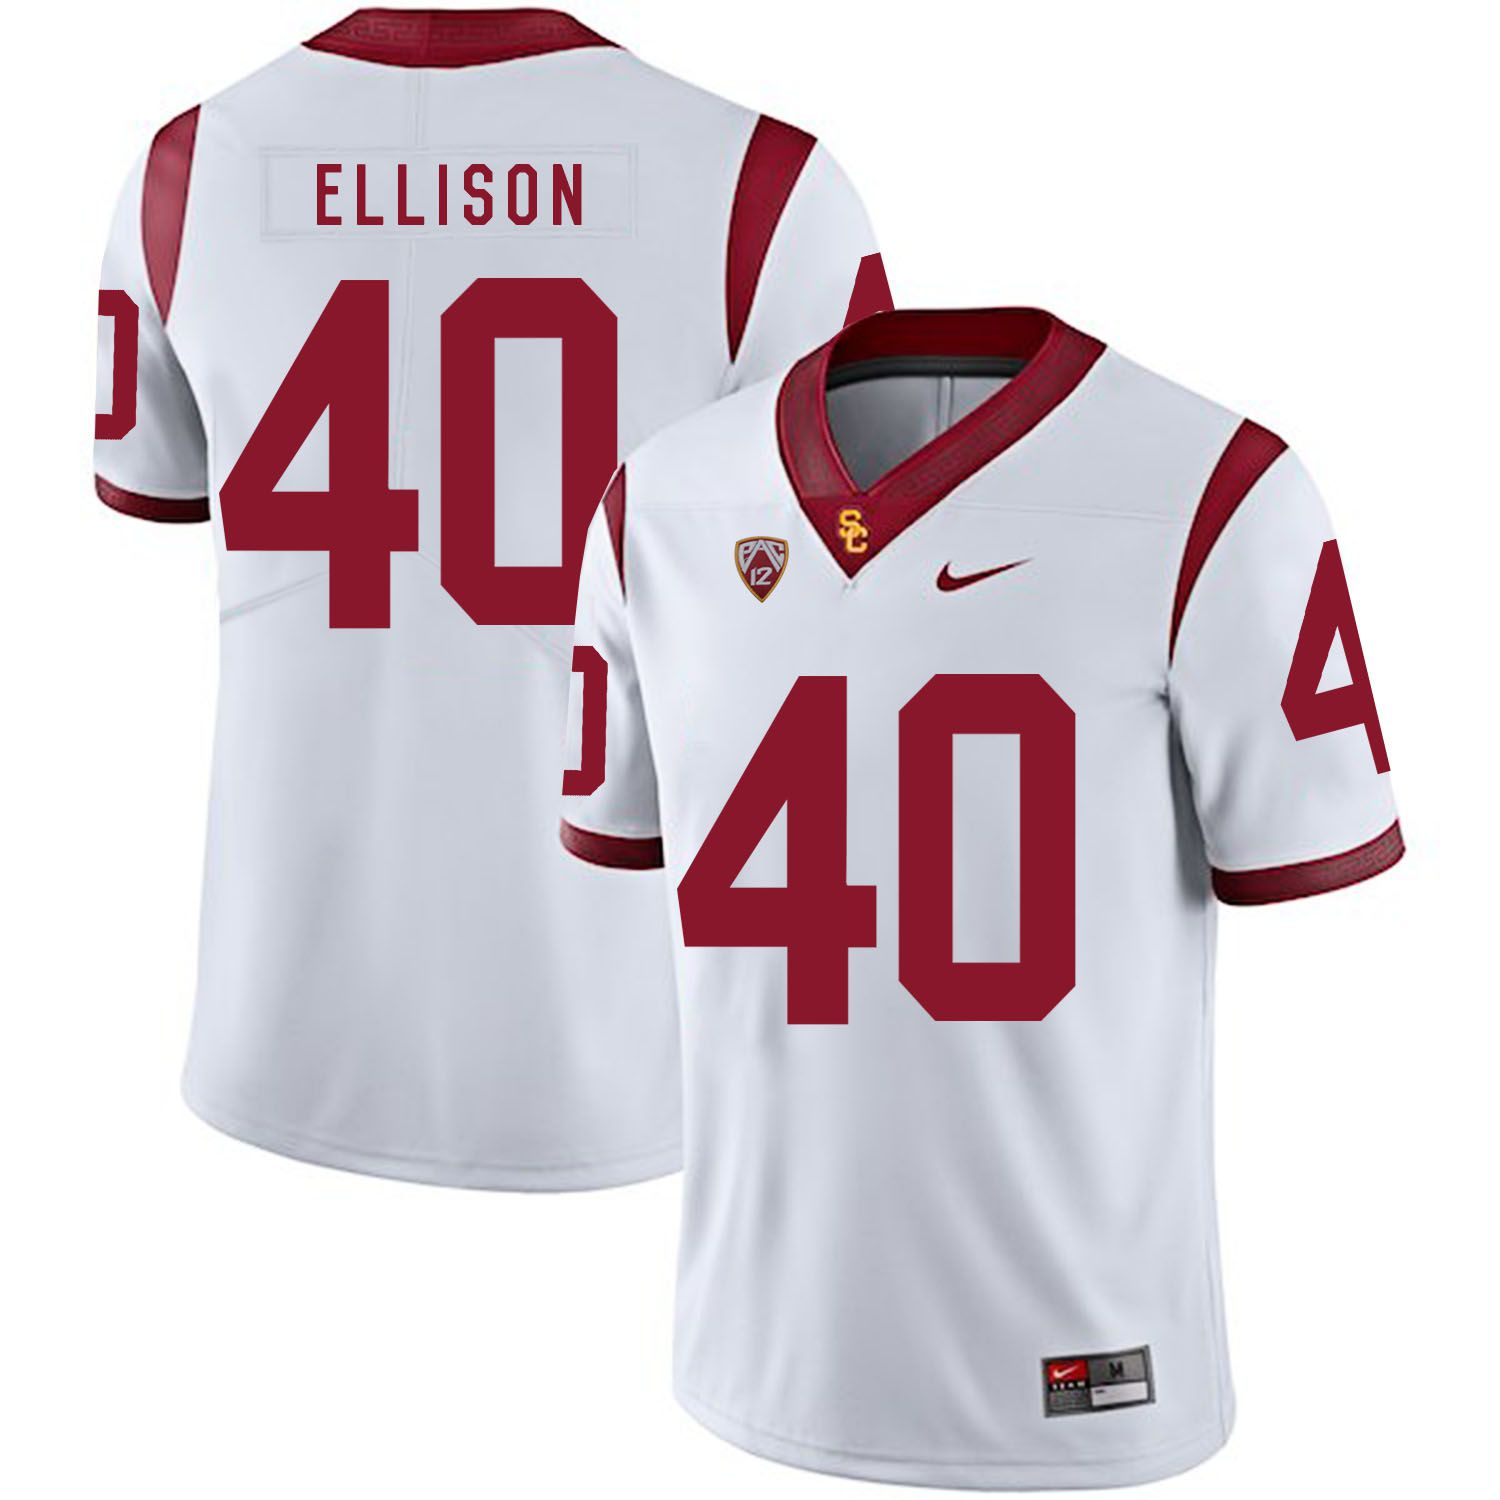 Men USC Trojans 40 Ellison White Customized NCAA Jerseys